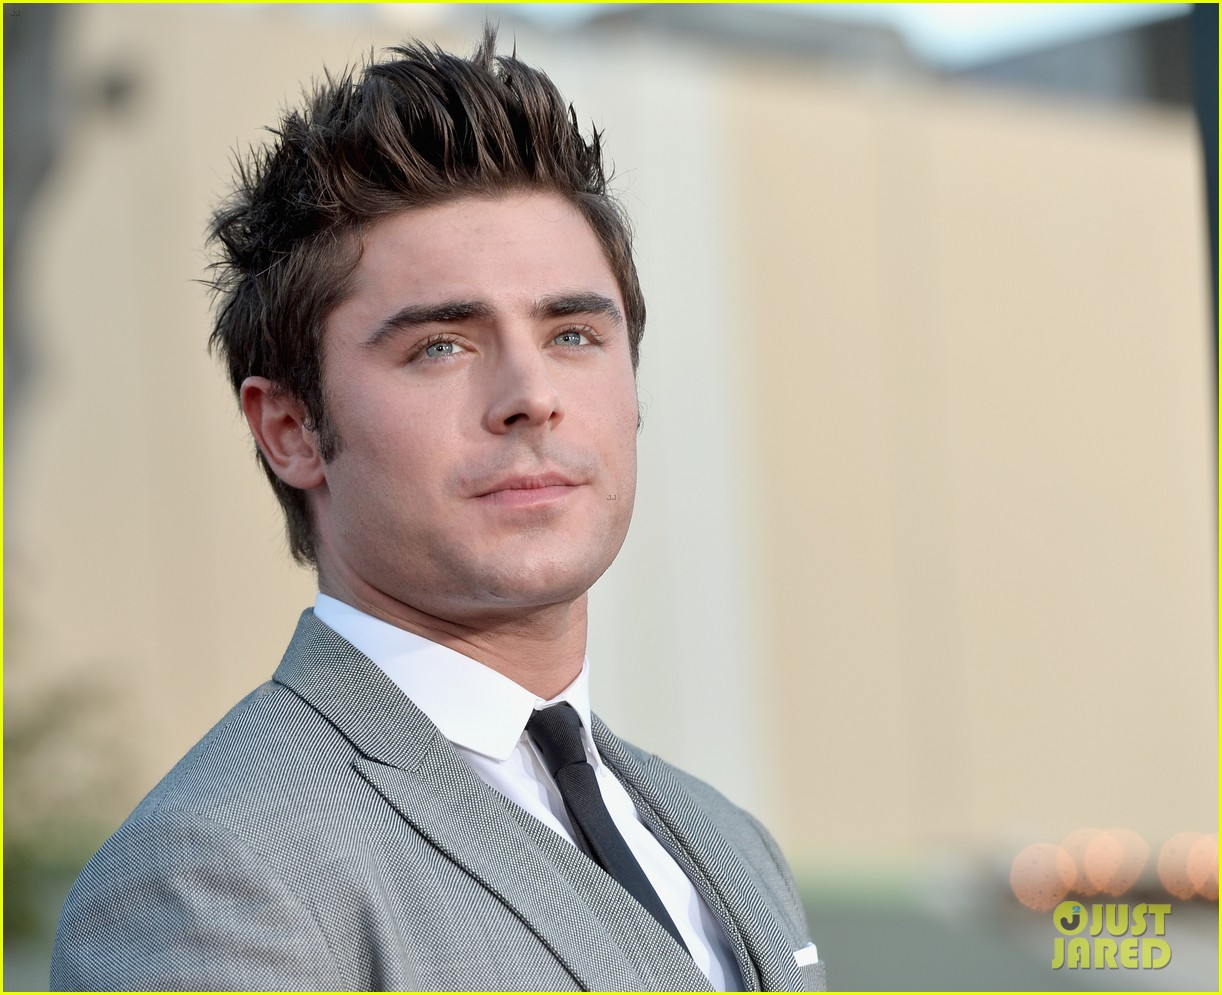 zac efron on star wars role there are irons in the fire 01